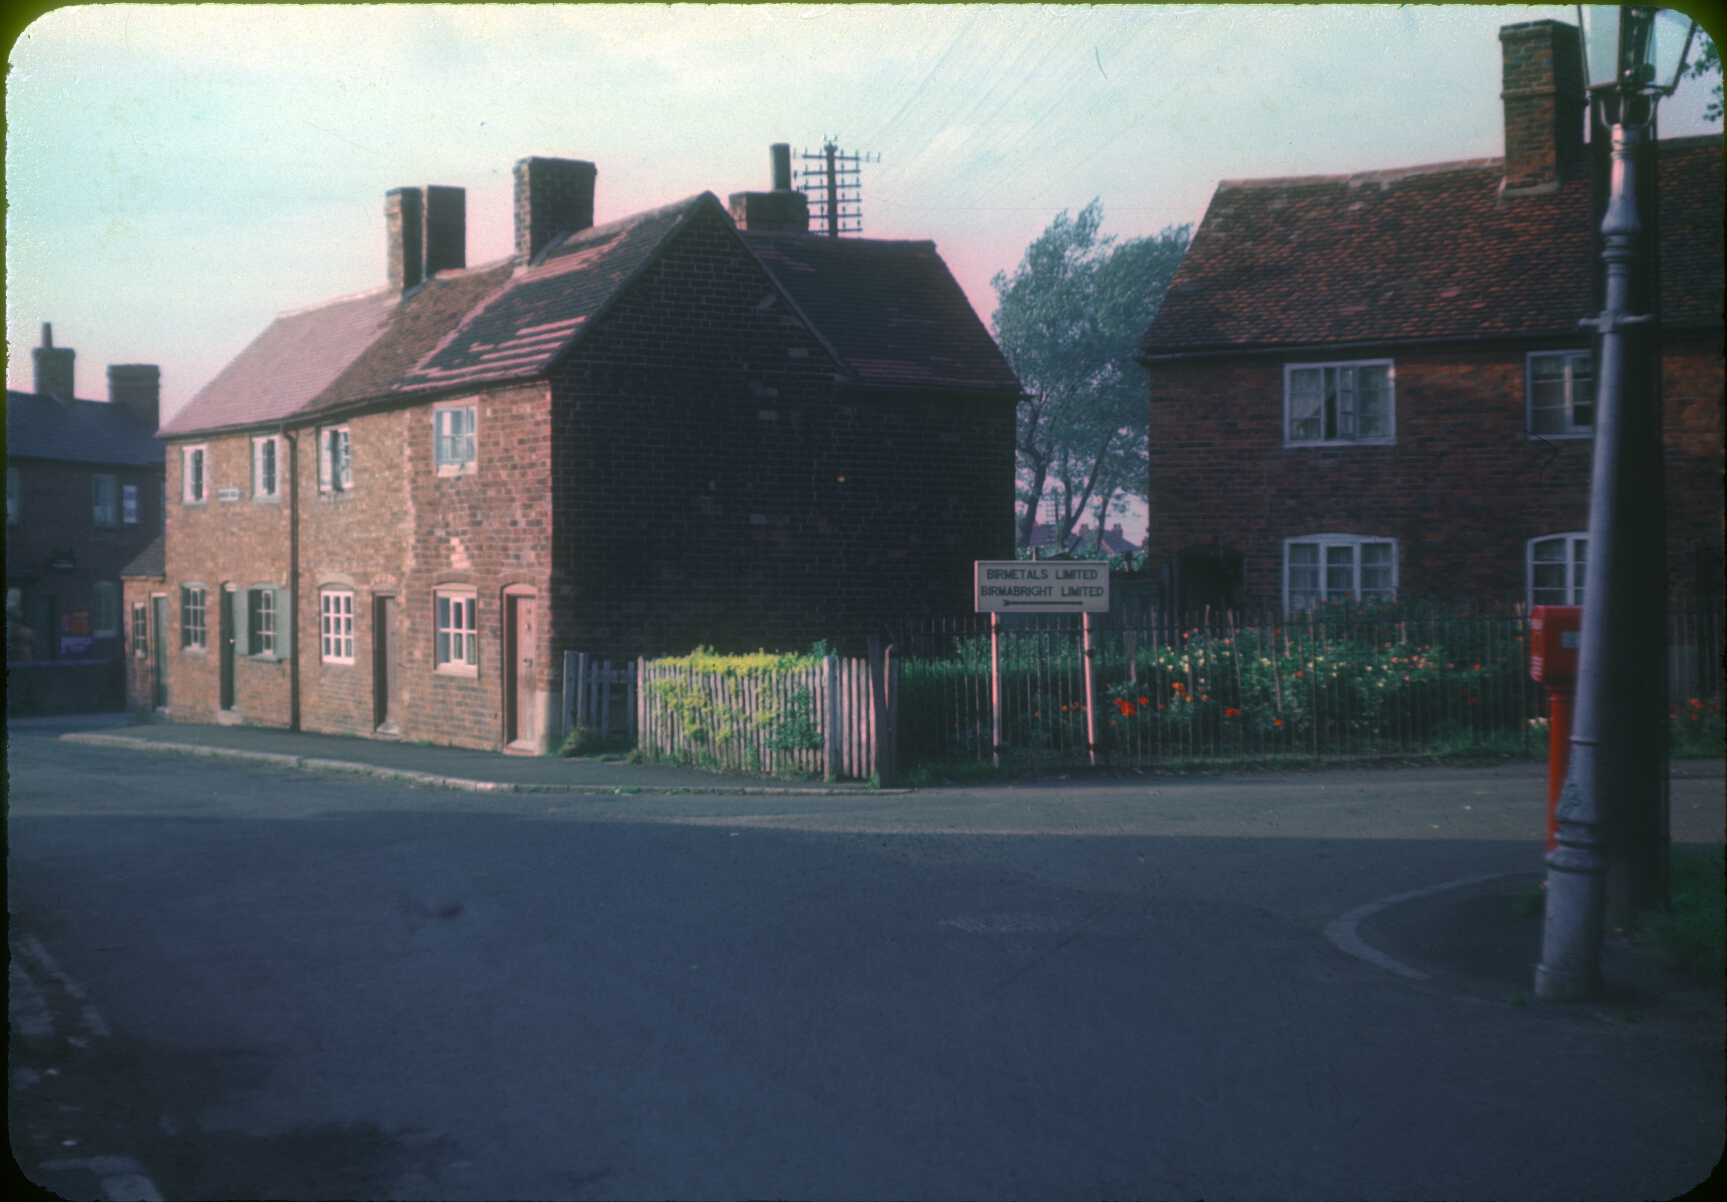 Bartley Green, Wood Gate Old Houses - ePapers Repository